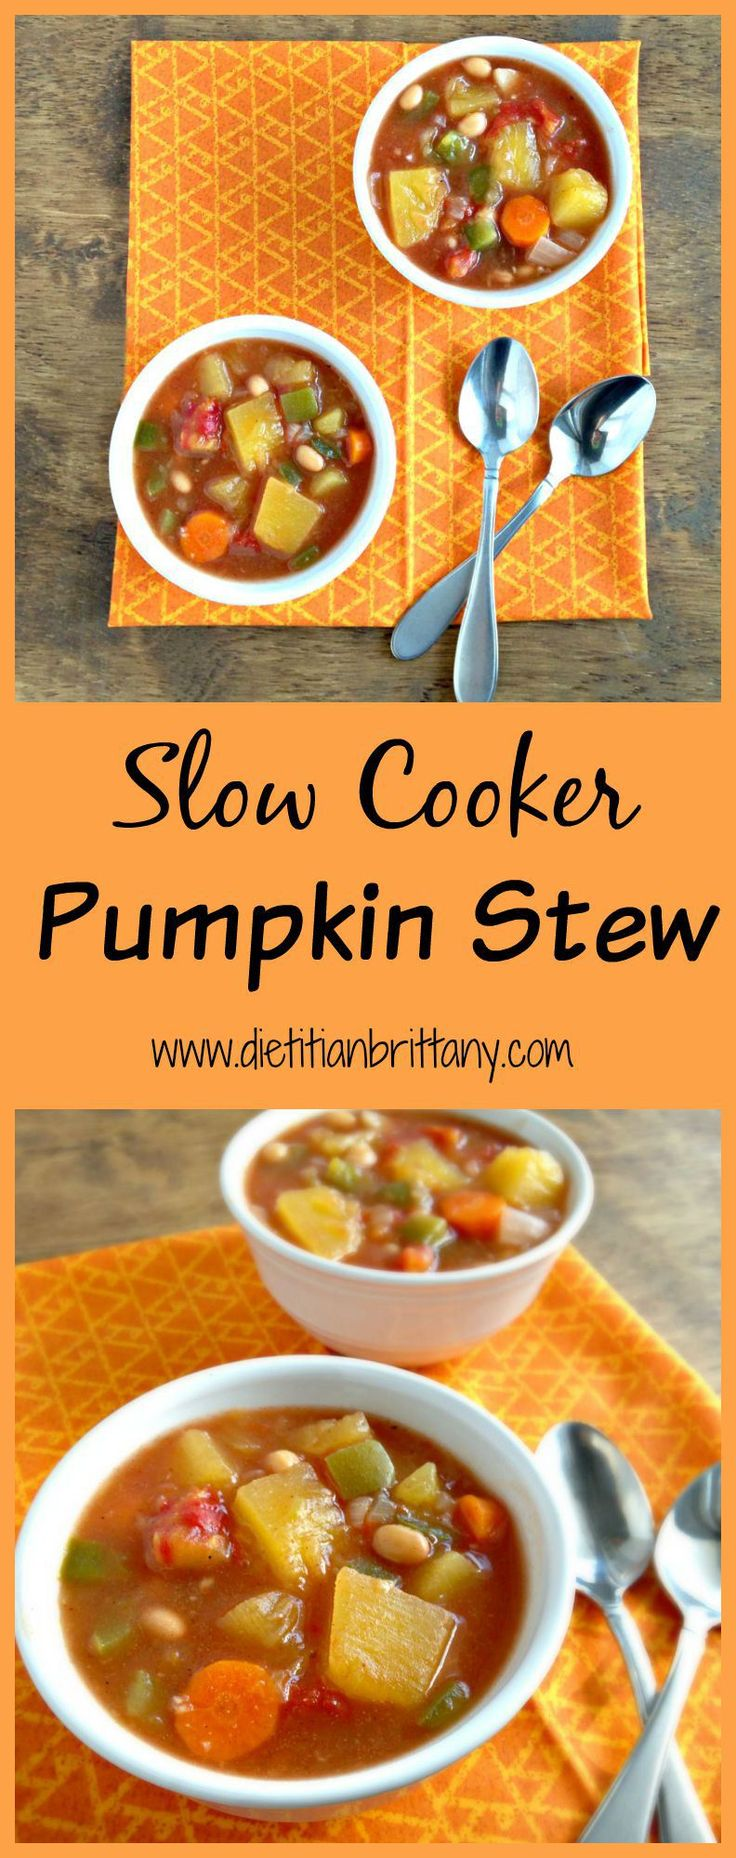 Slow Cooker Pumpkin Stew - with REAL pumpkin! SO easy and yummy!